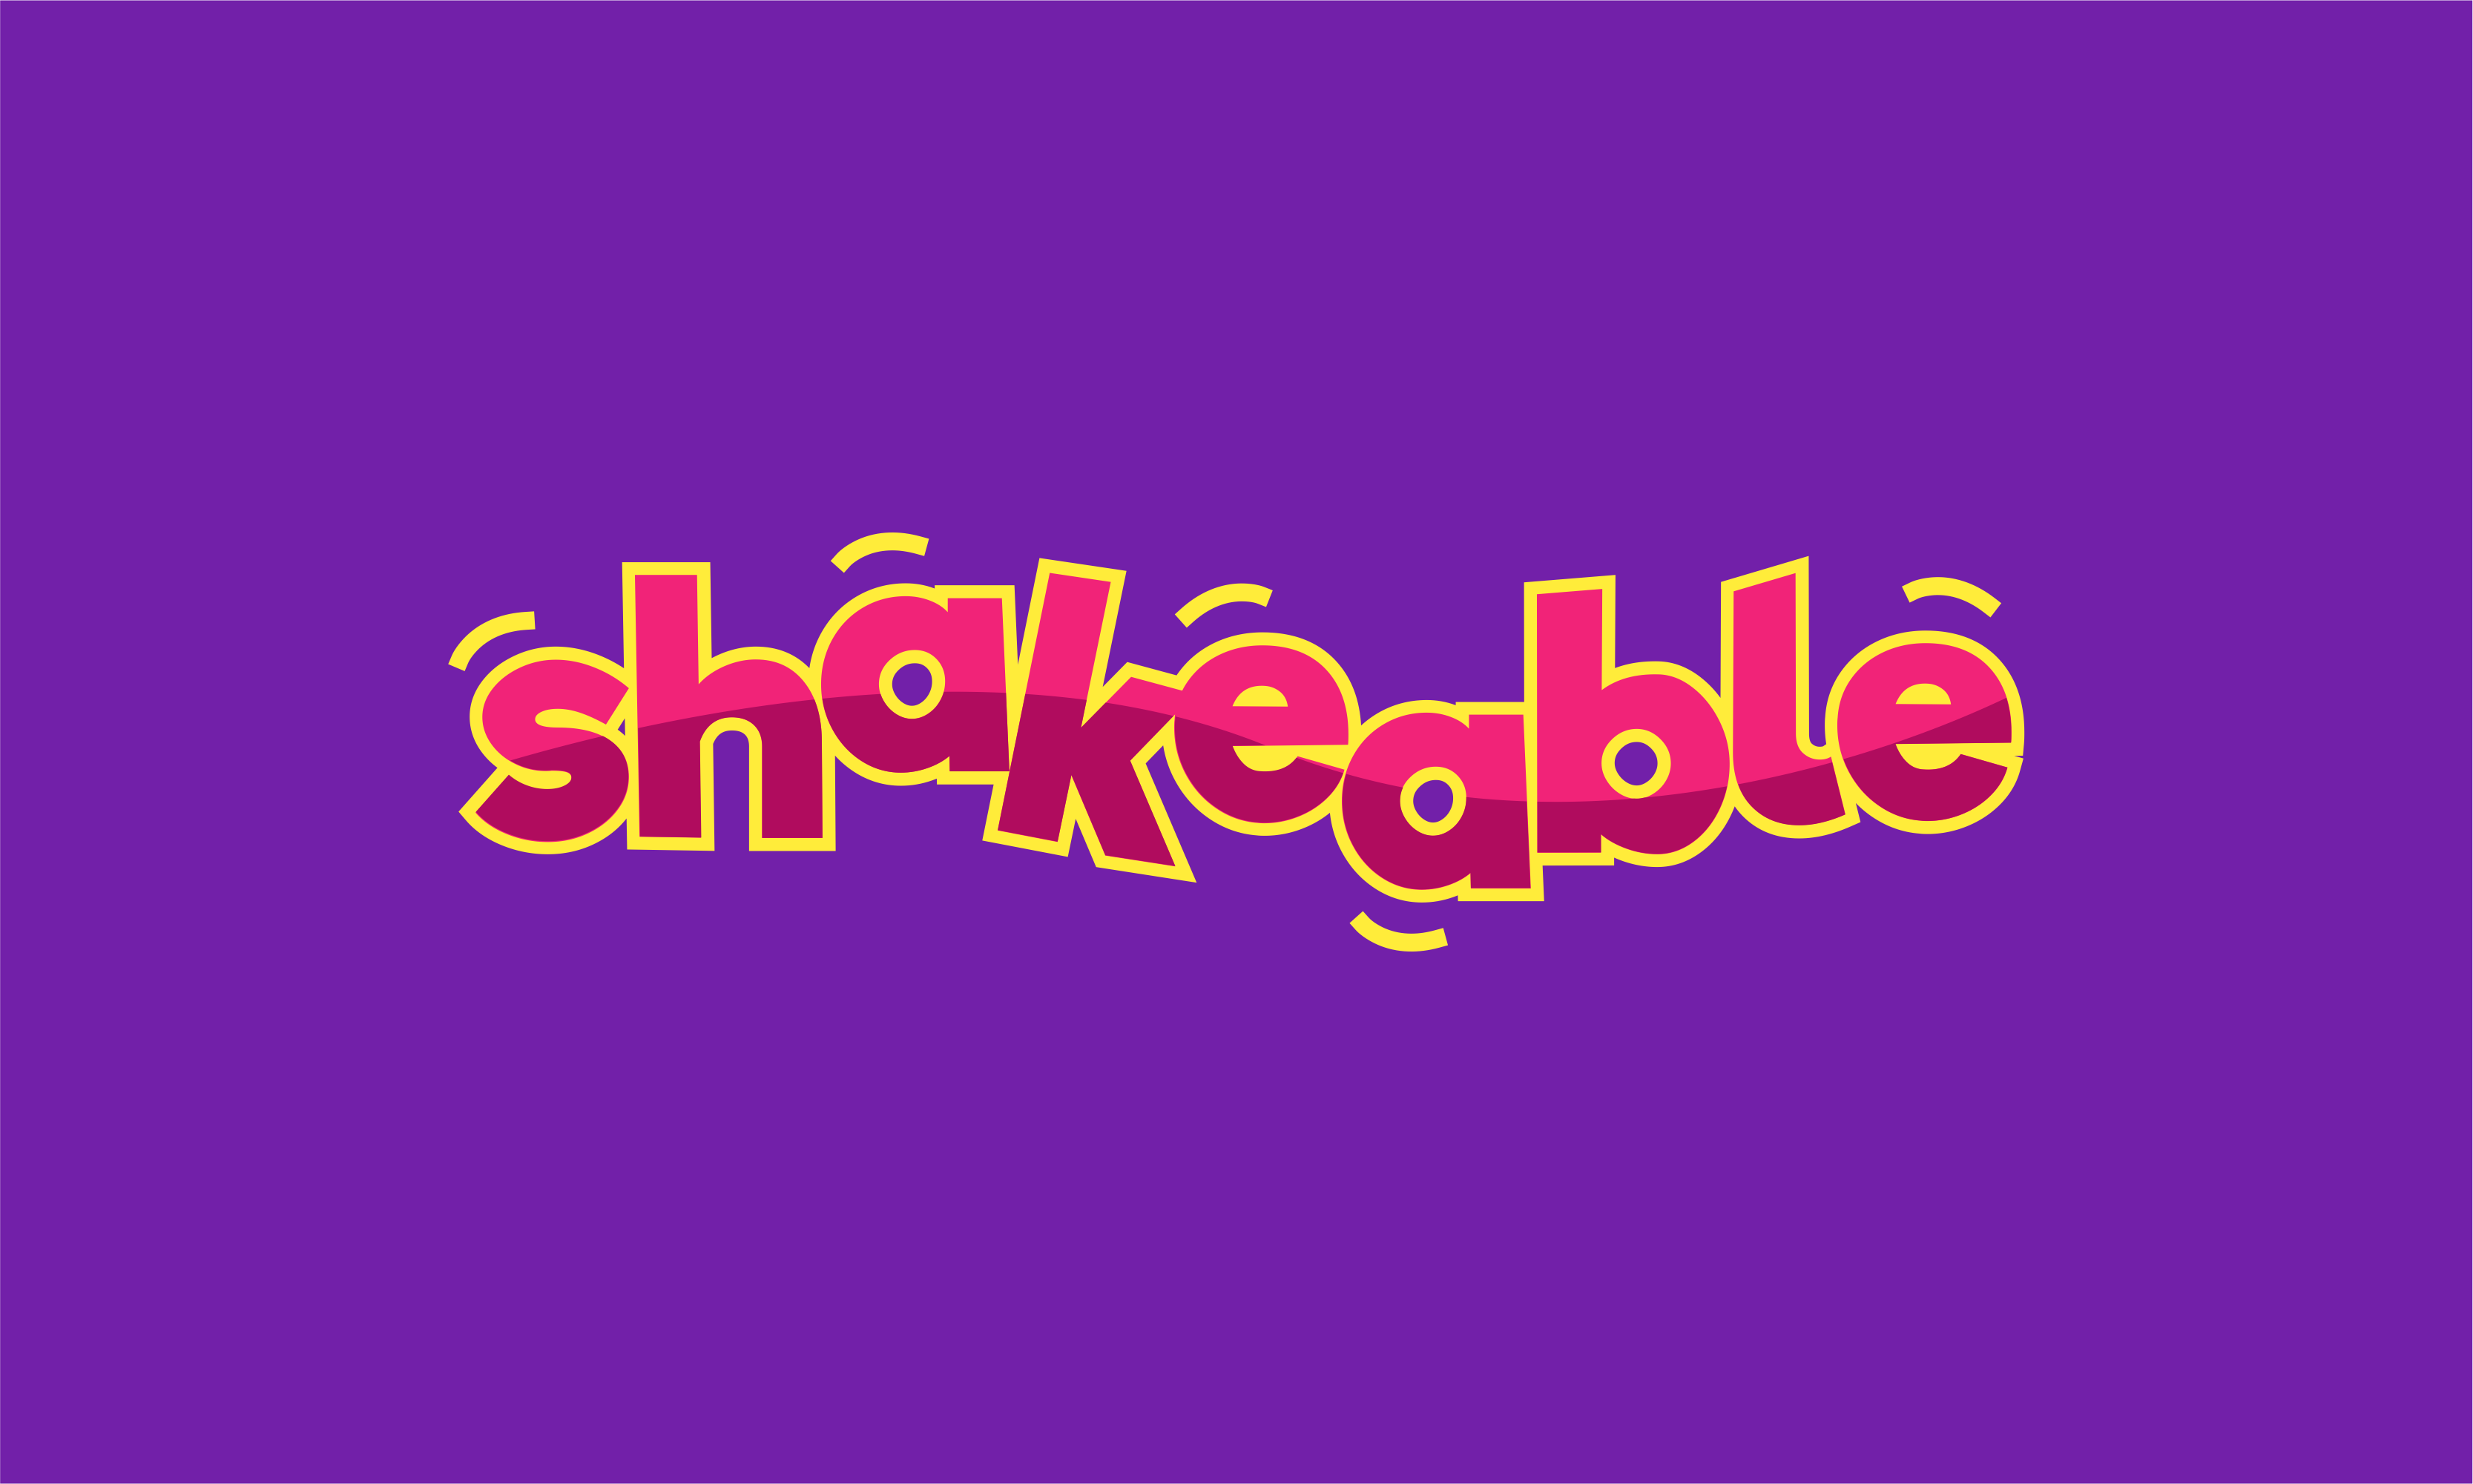 Shakeable